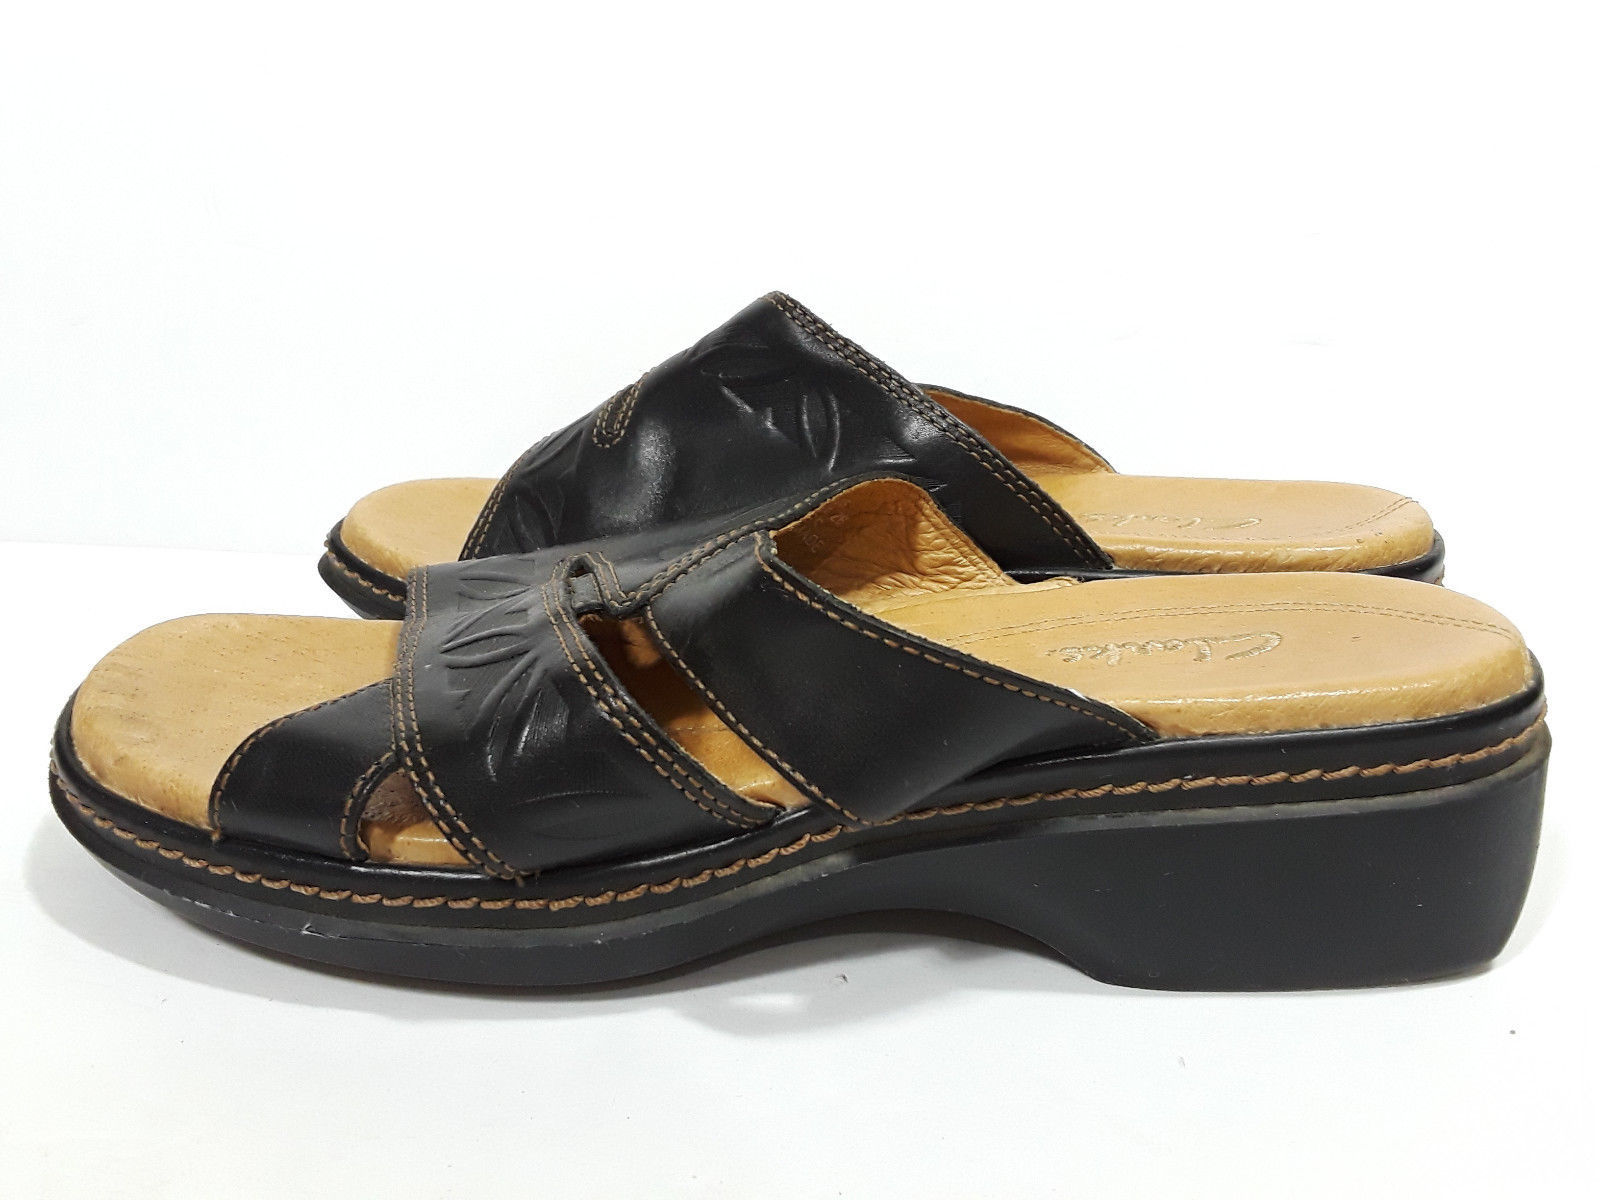 CLARKS Black Leather Sandals Womens 6M Heel and 50 similar items